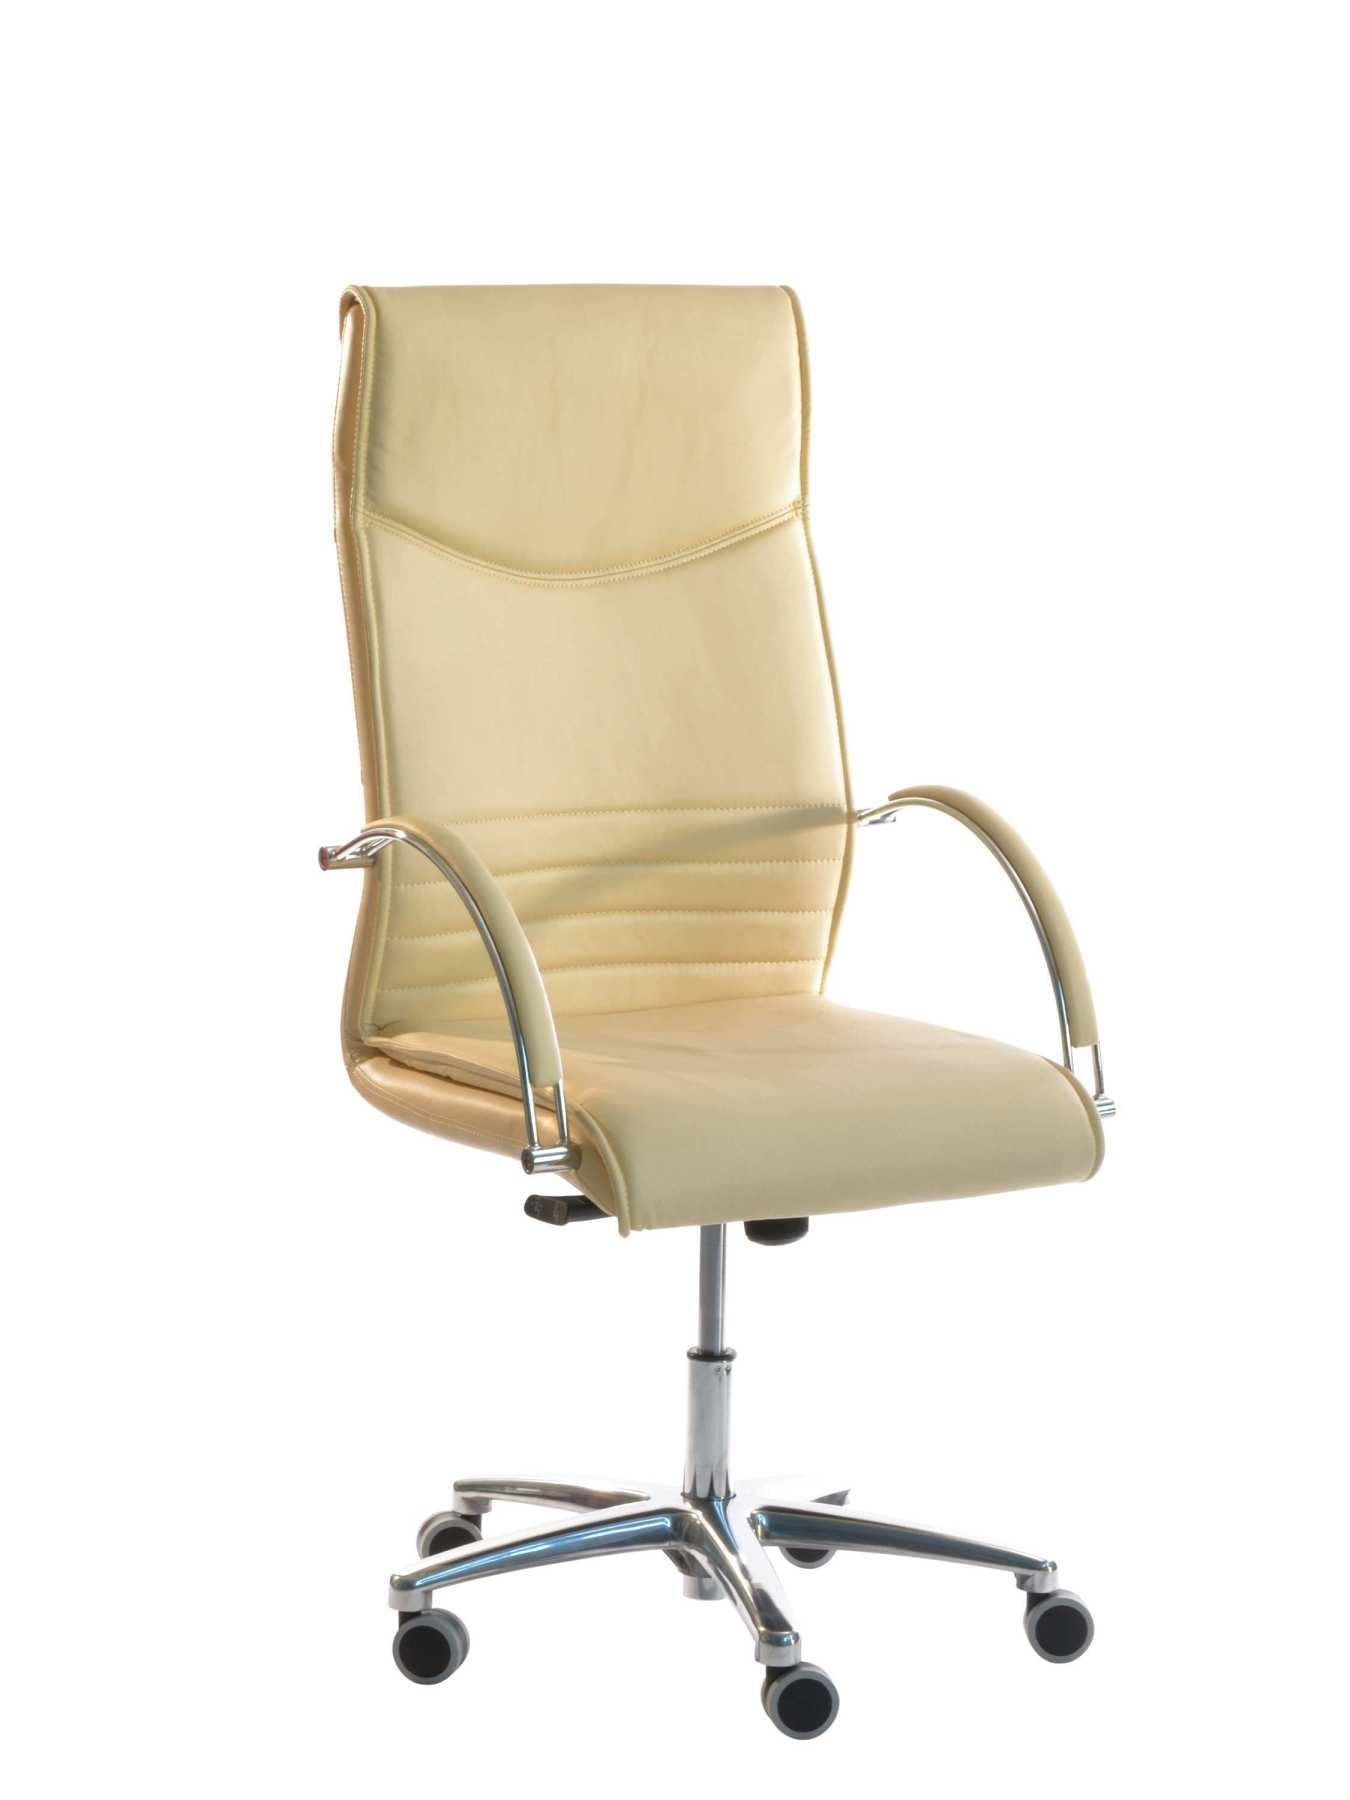 Chair Ergonomic Office Confidant/standby With Mechanism Rocker Multi Position And Height Adjustable-Seat